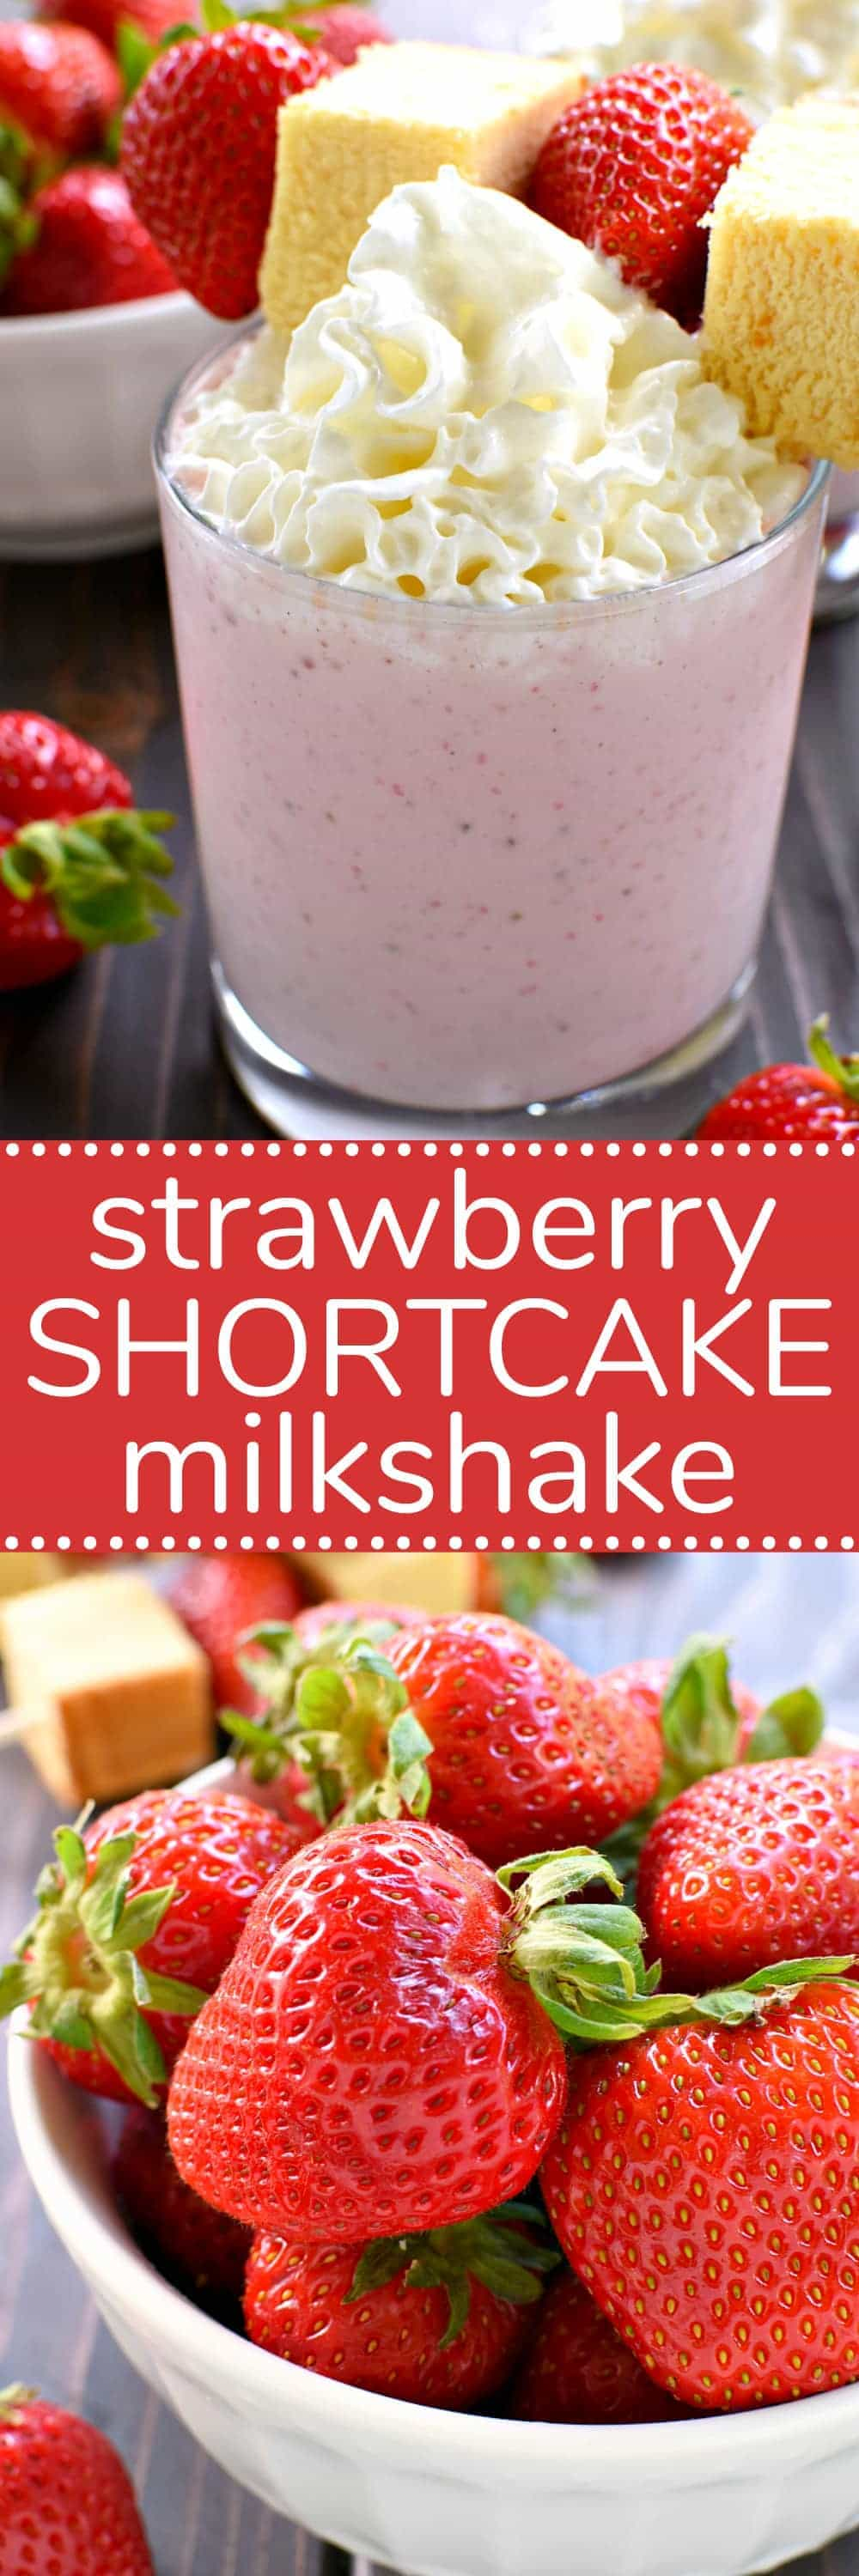 This Strawberry Shortcake Milkshake is the perfect summer treat! All the flavors of strawberry shortcake in one delicious glass....and ready in no time at all! If you love shortcake you'll LOVE this easy summer twist!